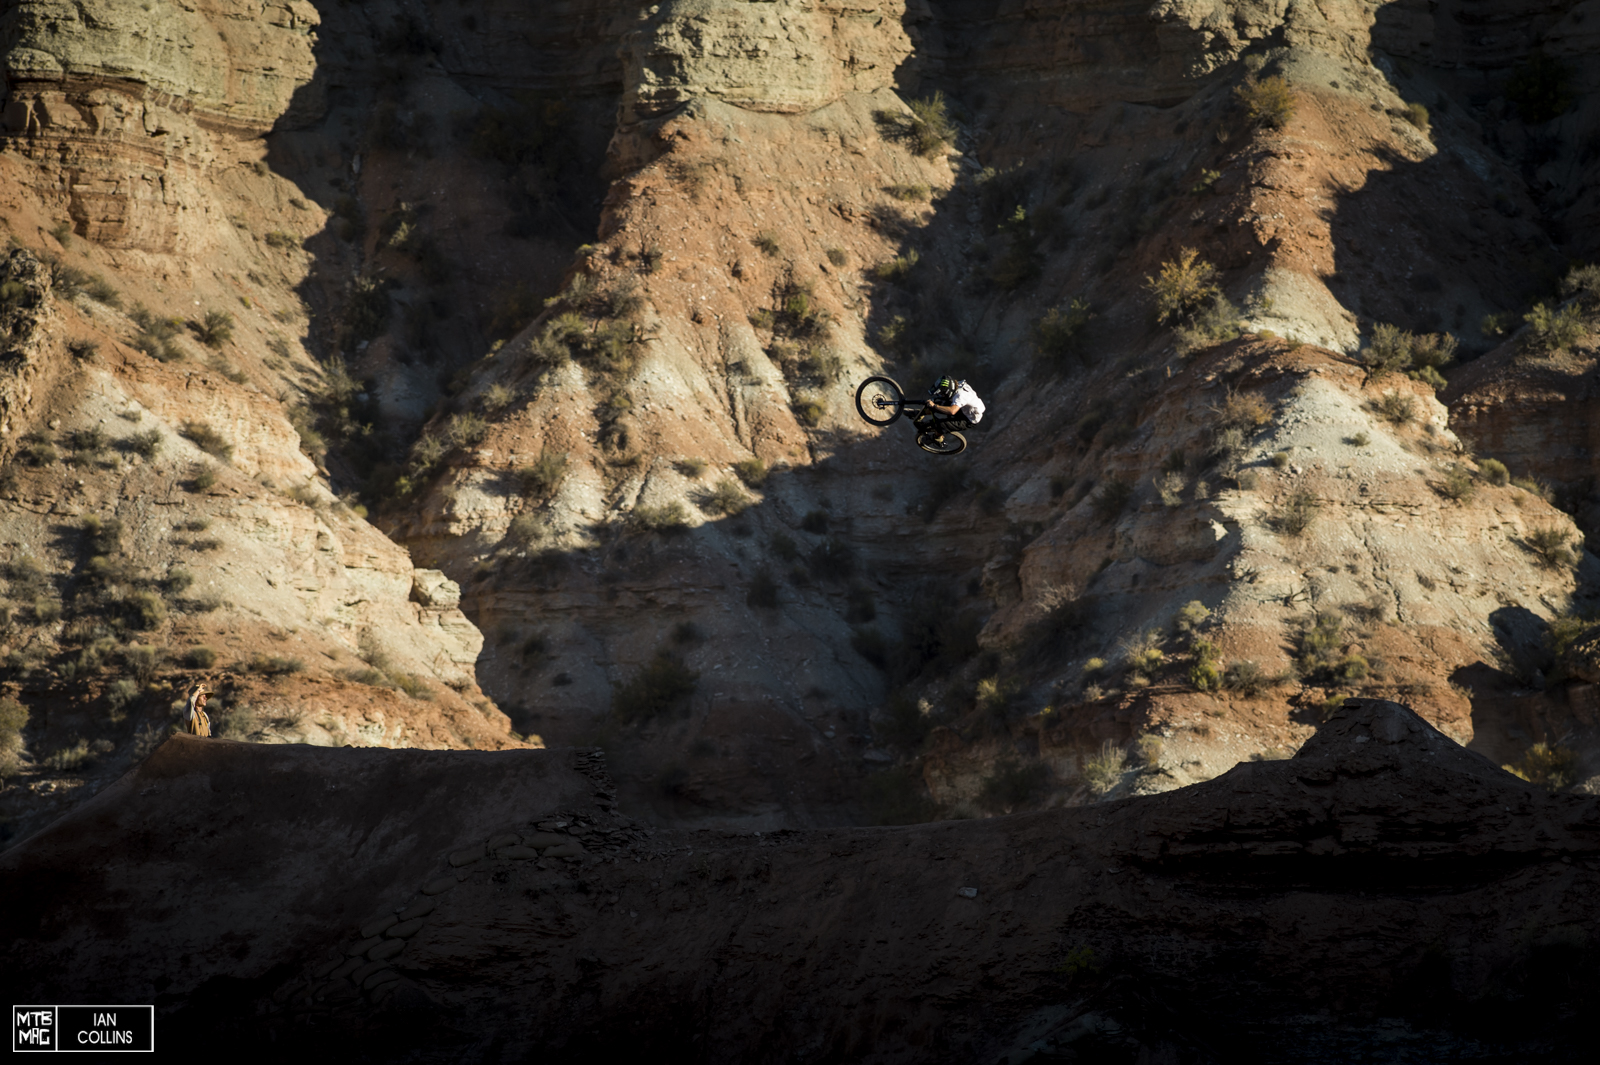 Aggy blowing minds. When the sun drops, it cools down and riders start to throw down.